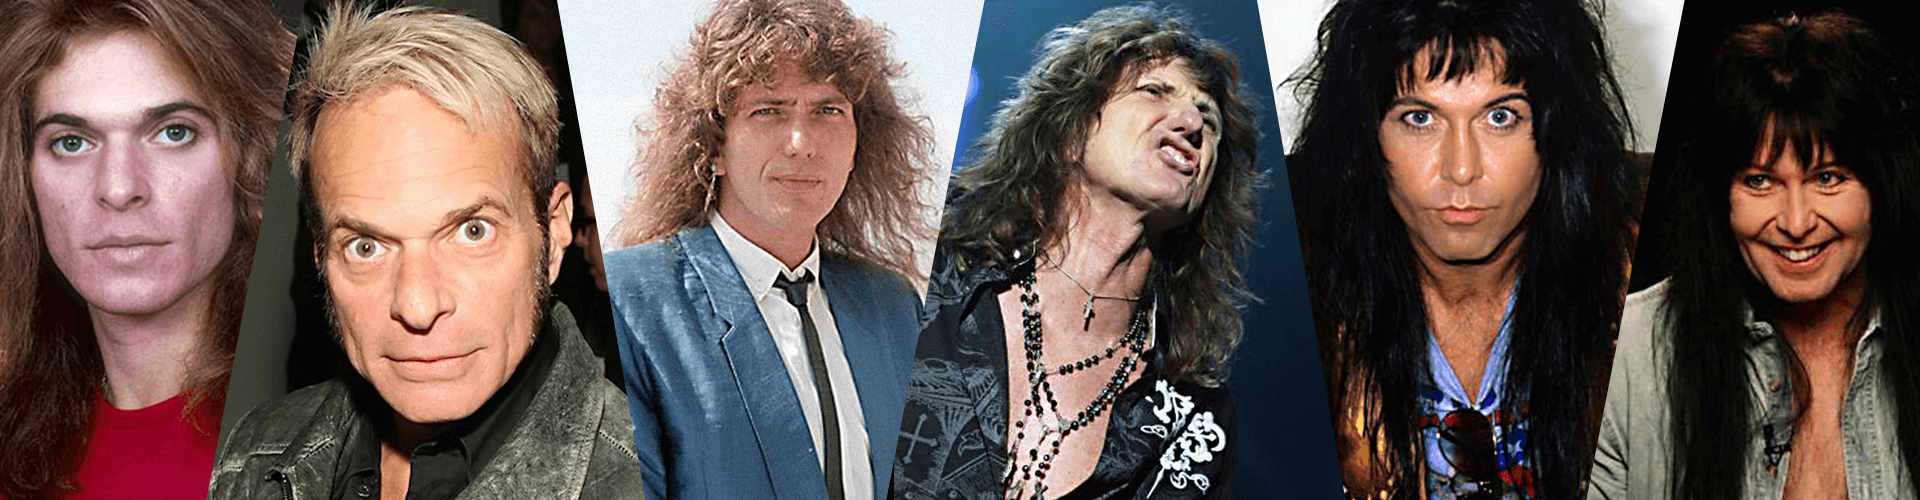 80s rockers: where are they now?